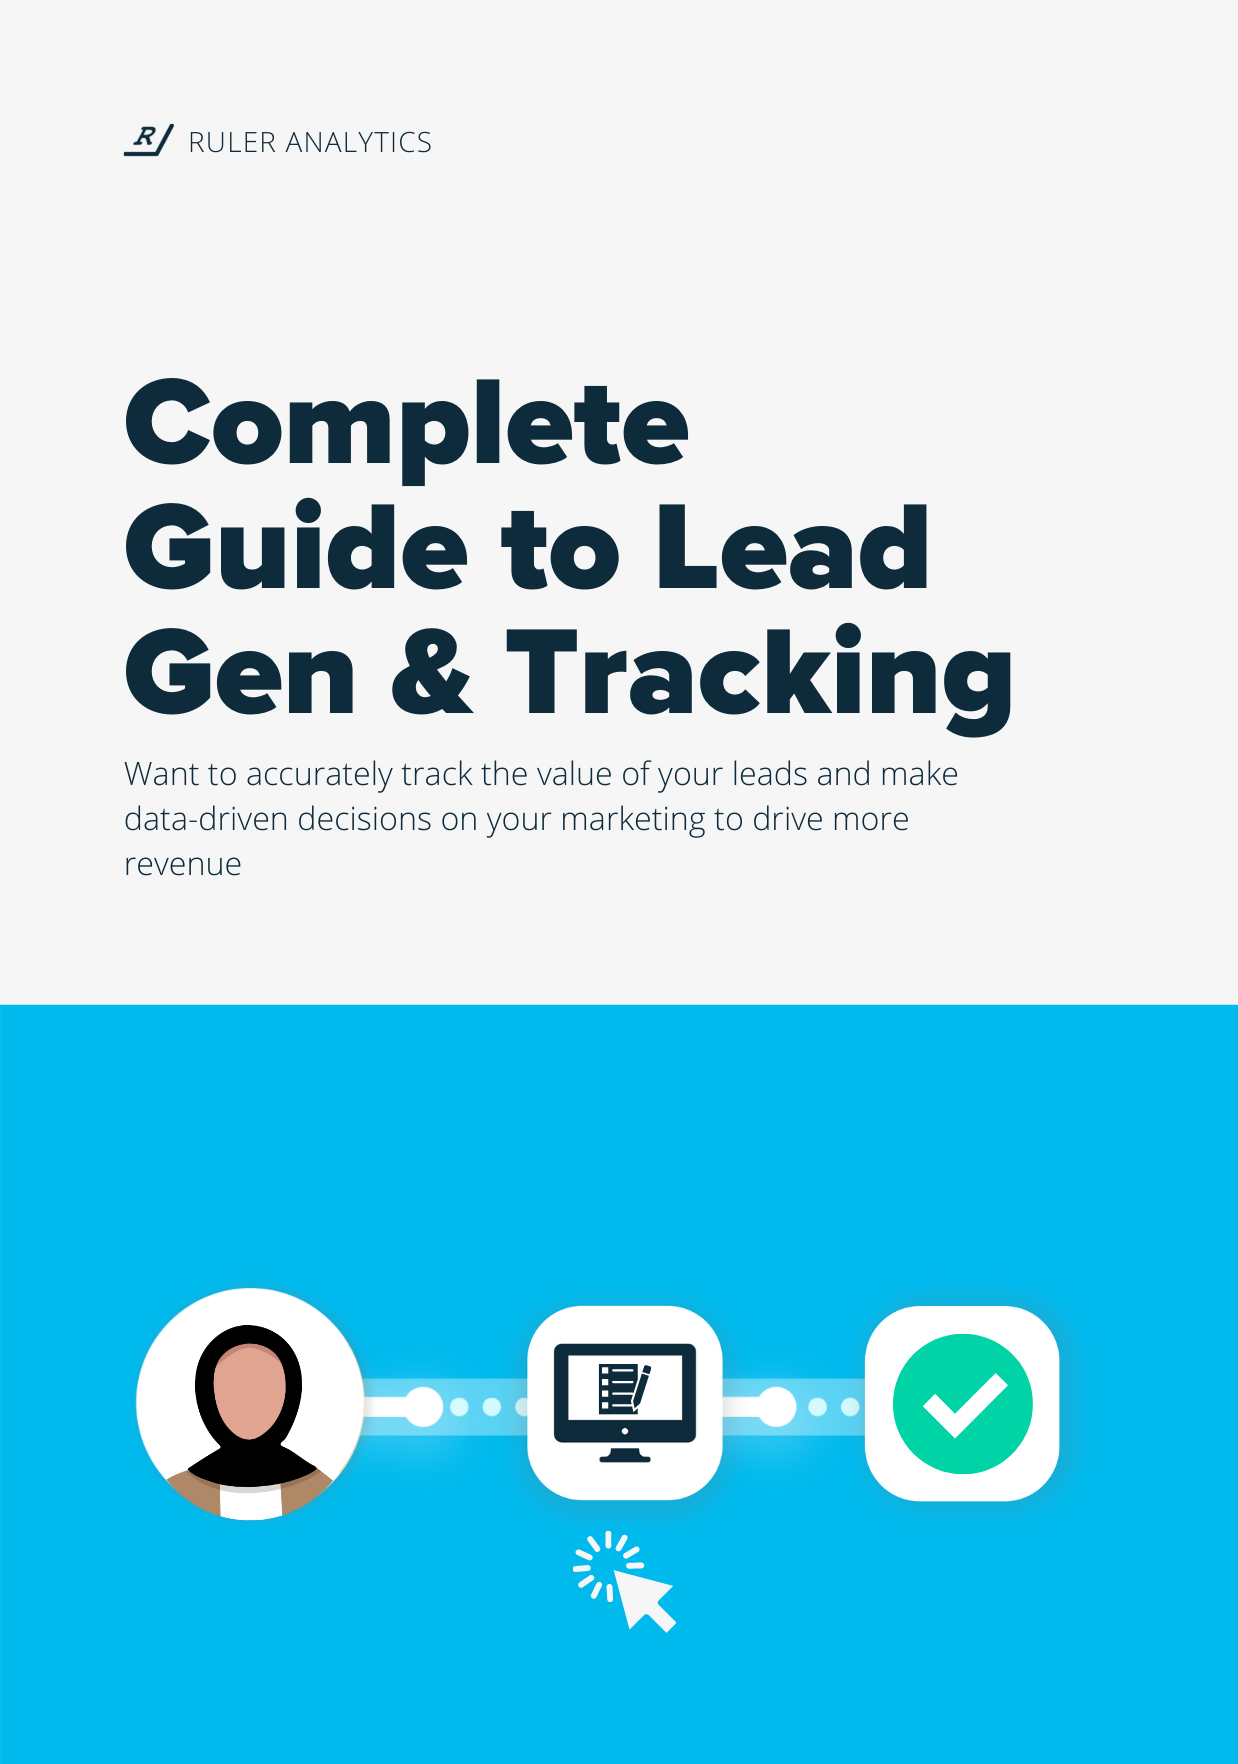 Guide to Lead Generation & Tracking